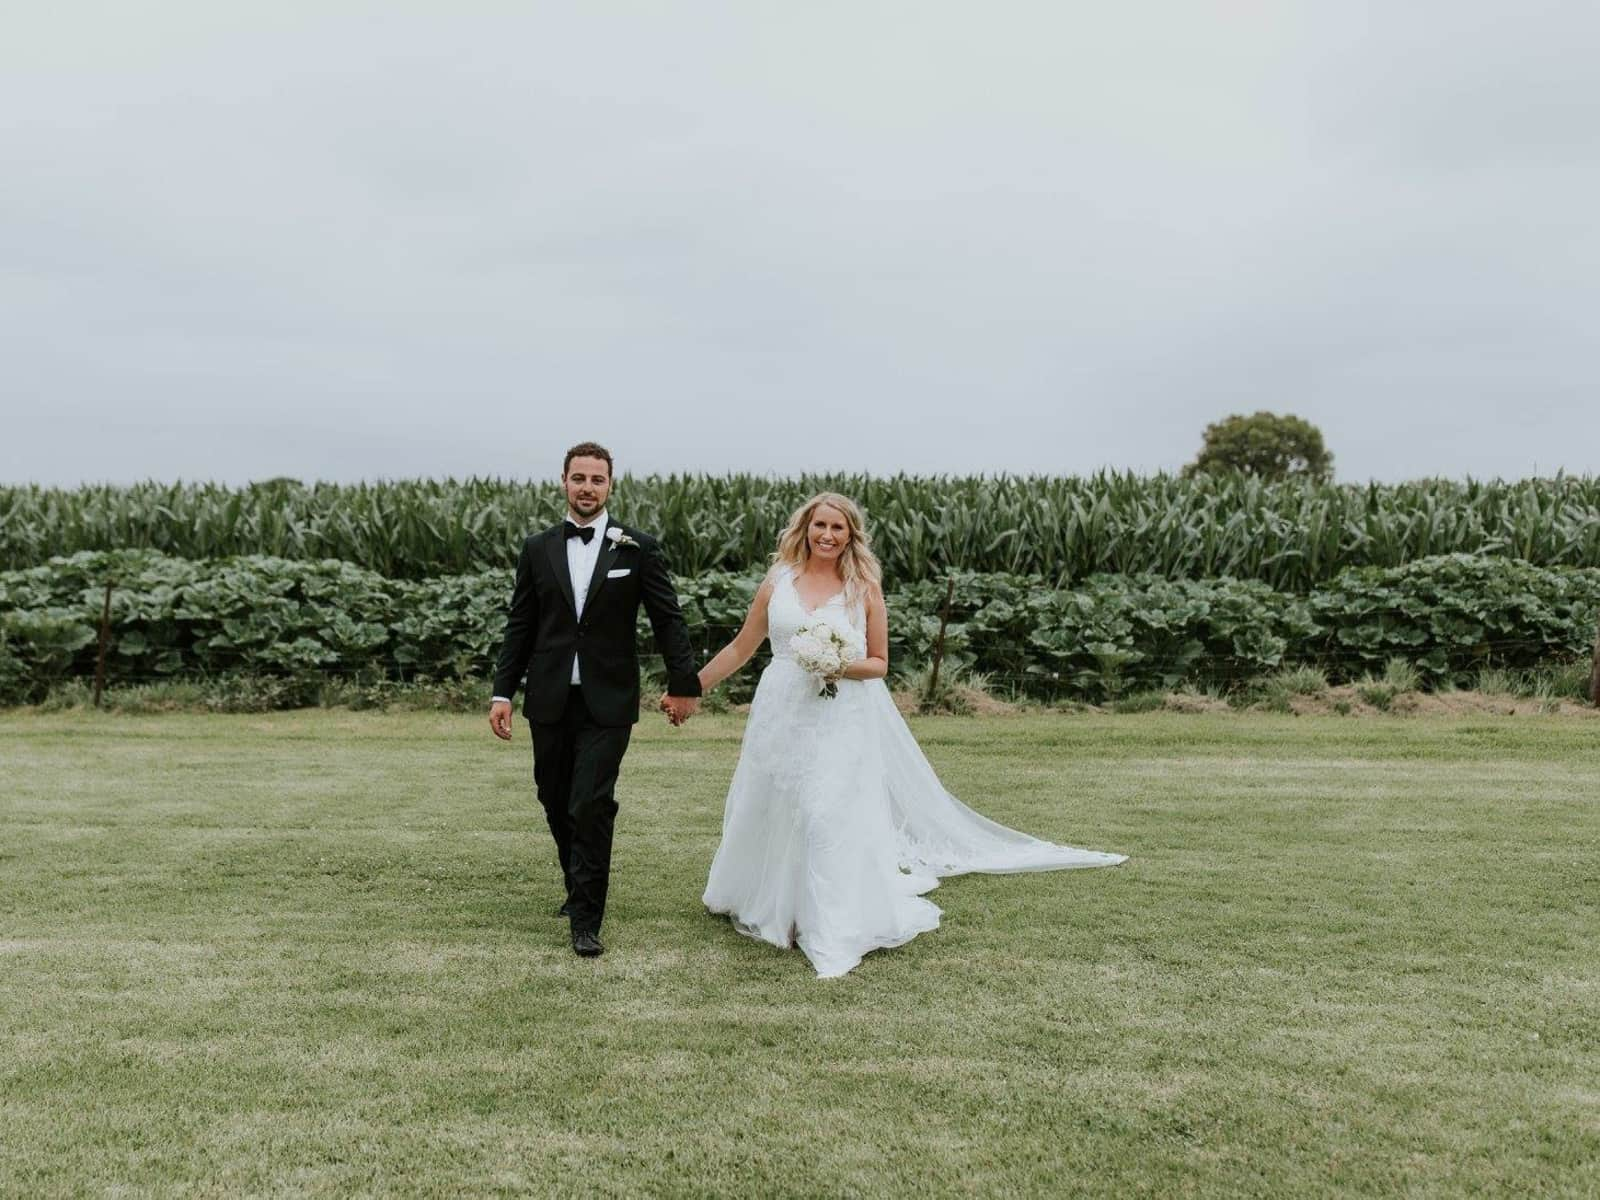 Ashleigh & Ryan from Bowral, New South Wales, Australia